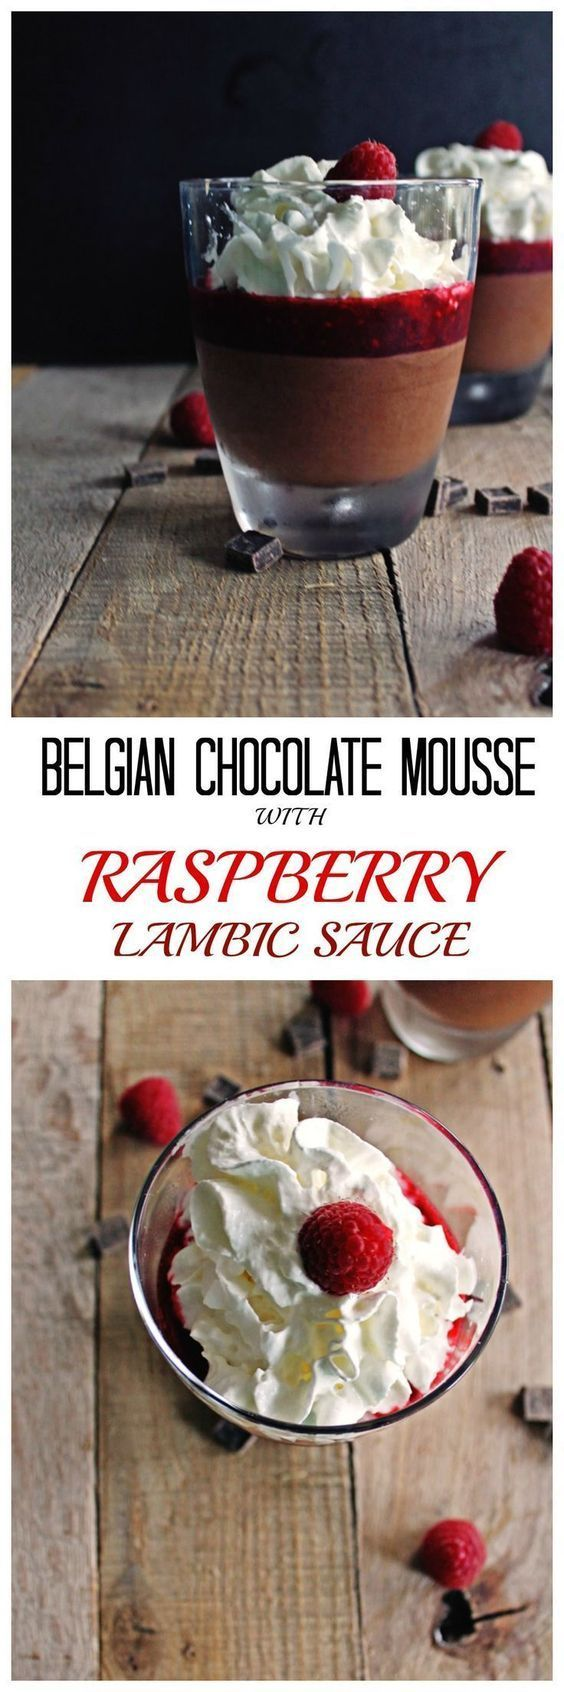 Easy to follow recipe for decadent Belgian chocolate mousse with raspberry lambic sauce. Topped with whipped cream and fresh raspberries. So good!